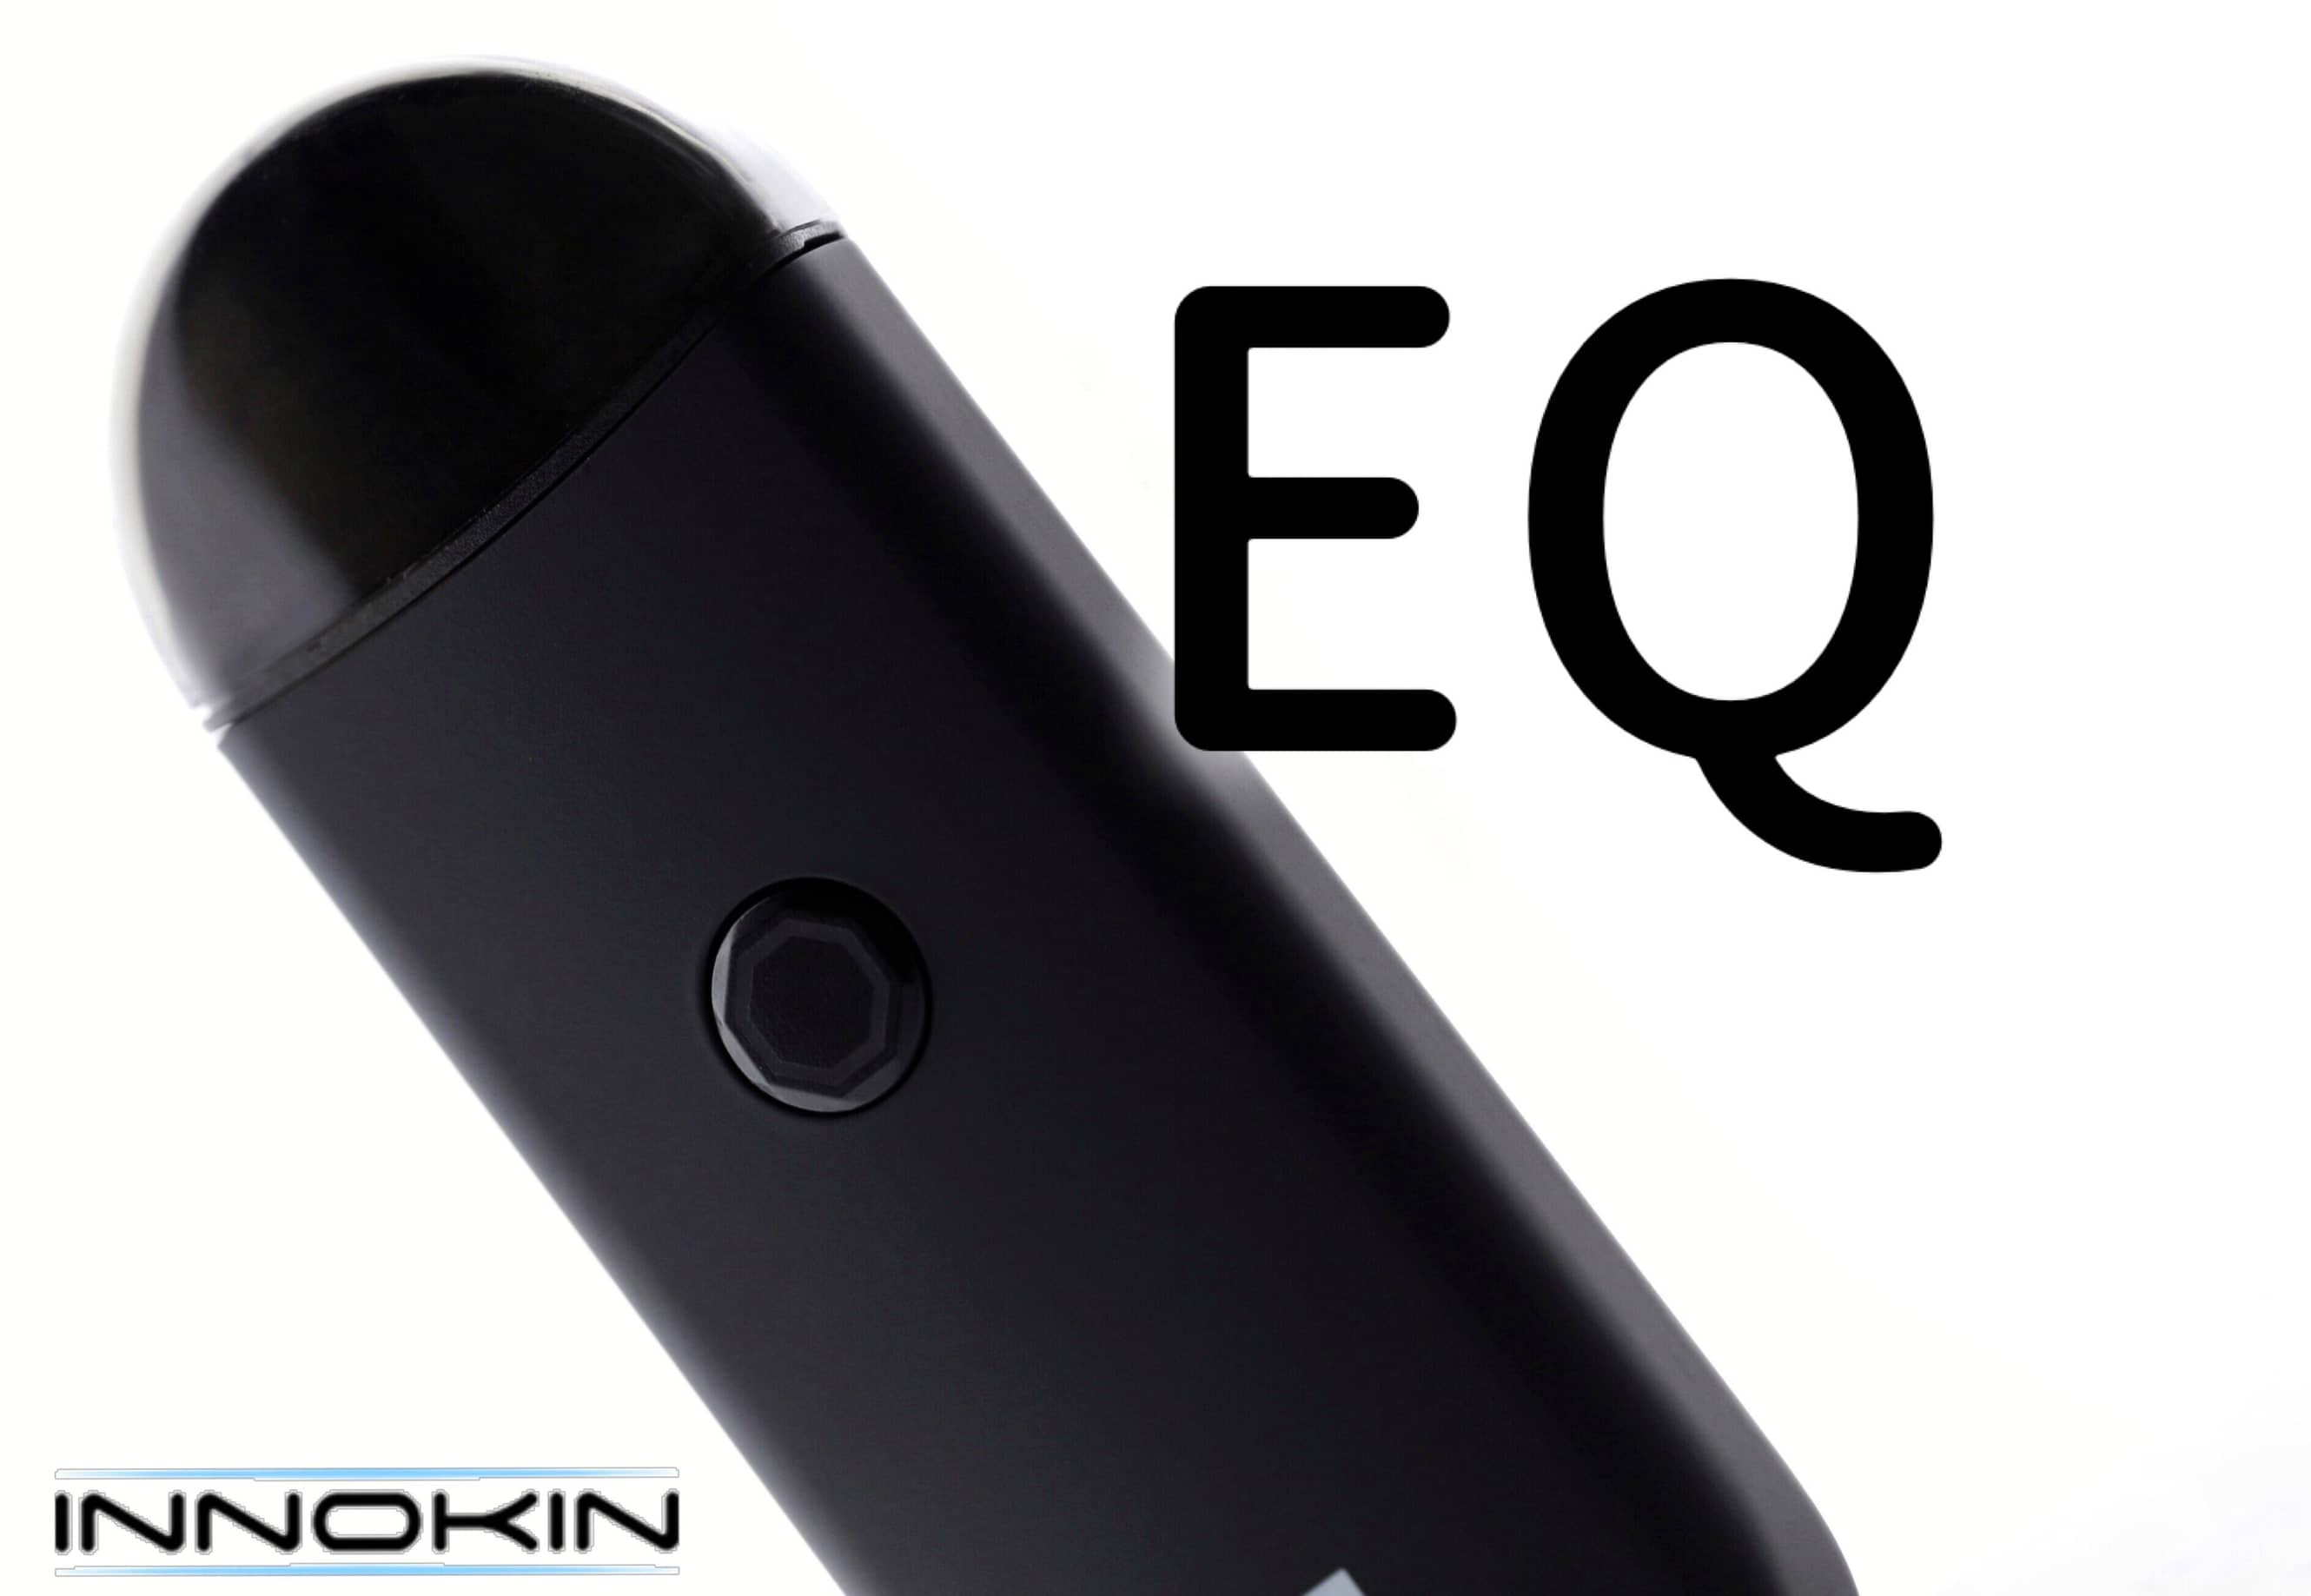 innokin EQ kit in stock